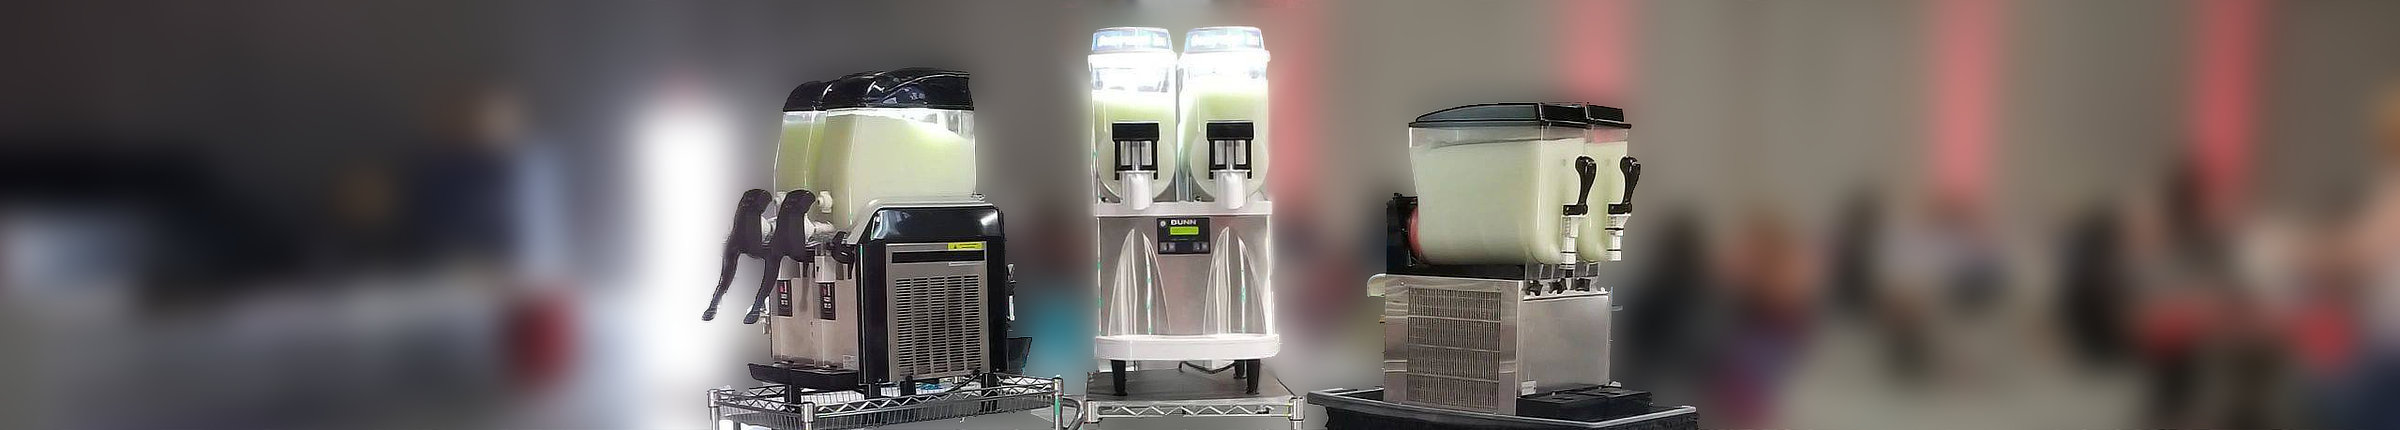 LV Taco - Margarita Machine Rental - Frozen Drink Machine